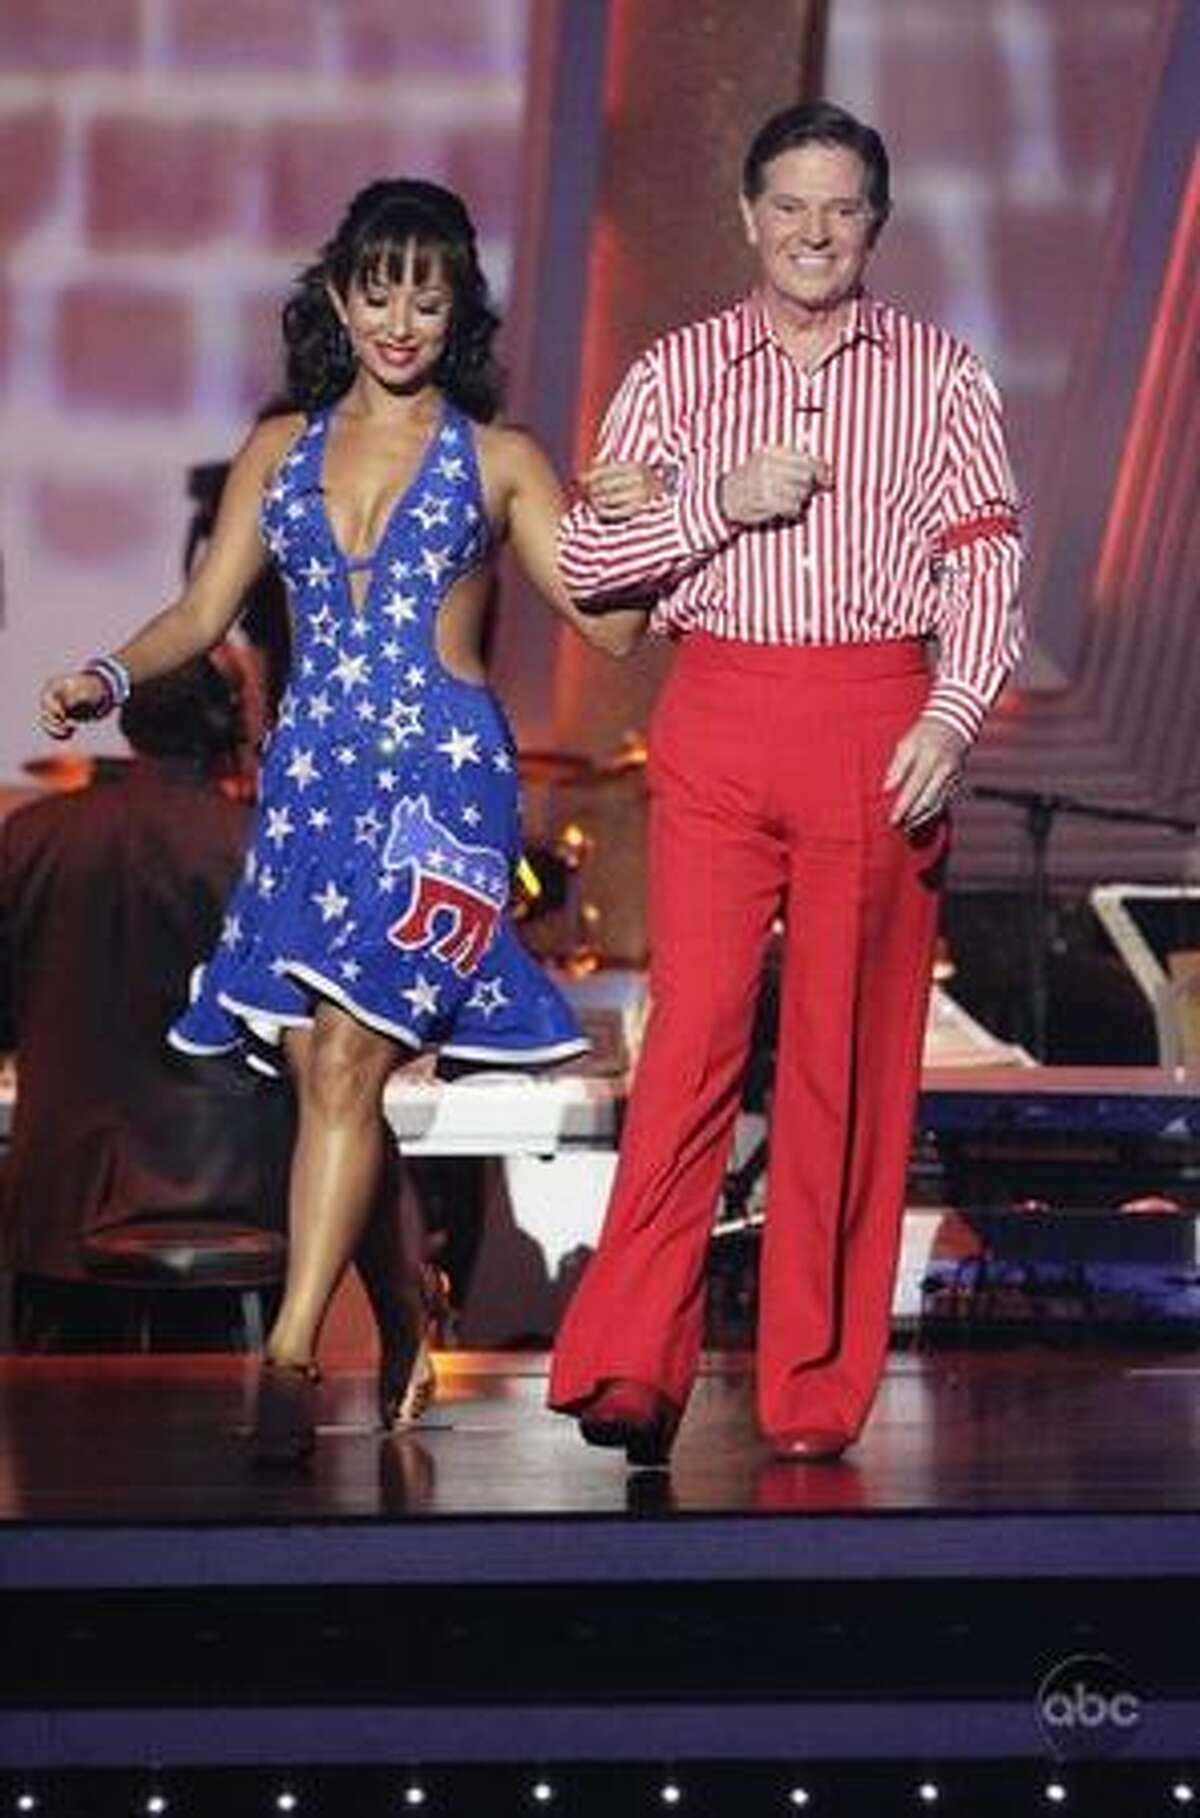 Cheryl Burke and former politician Tom DeLay.